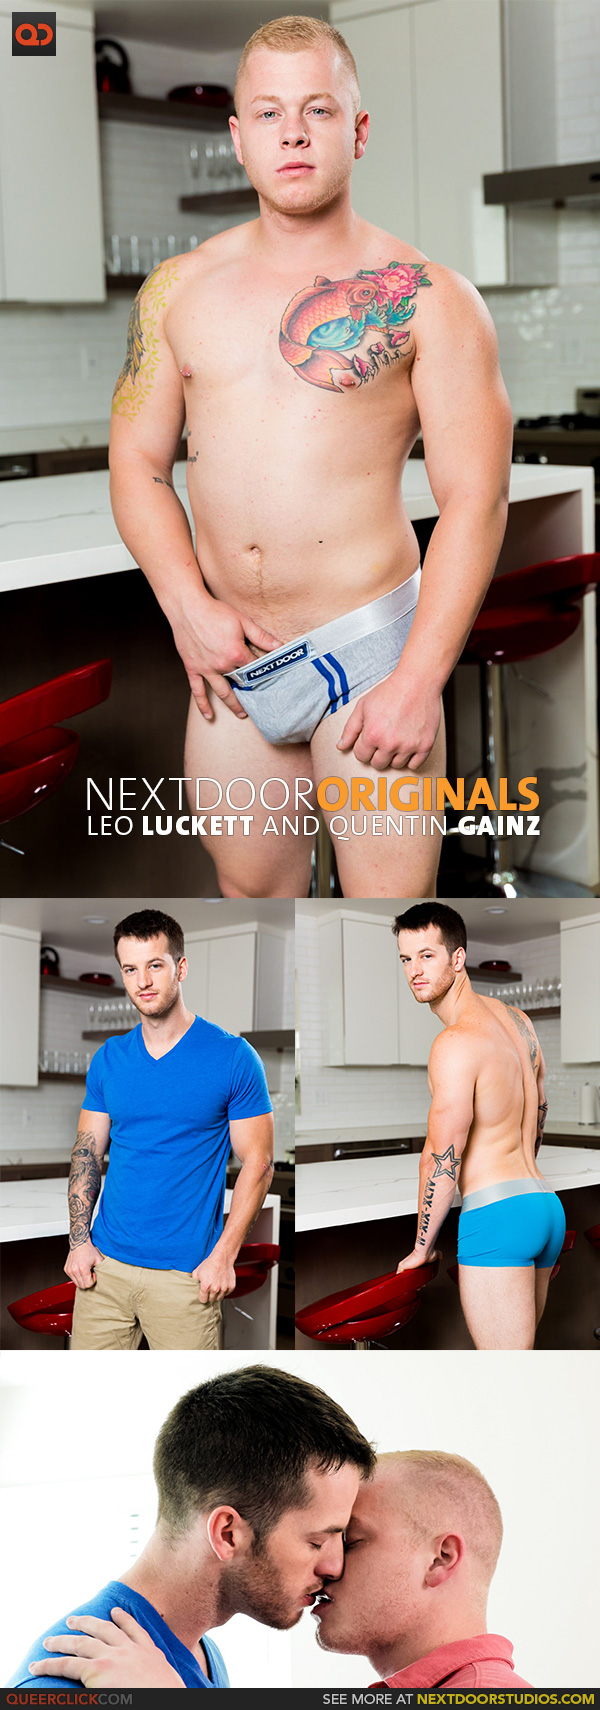 Next Door Studios: Leo Luckett and Quentin Gainz